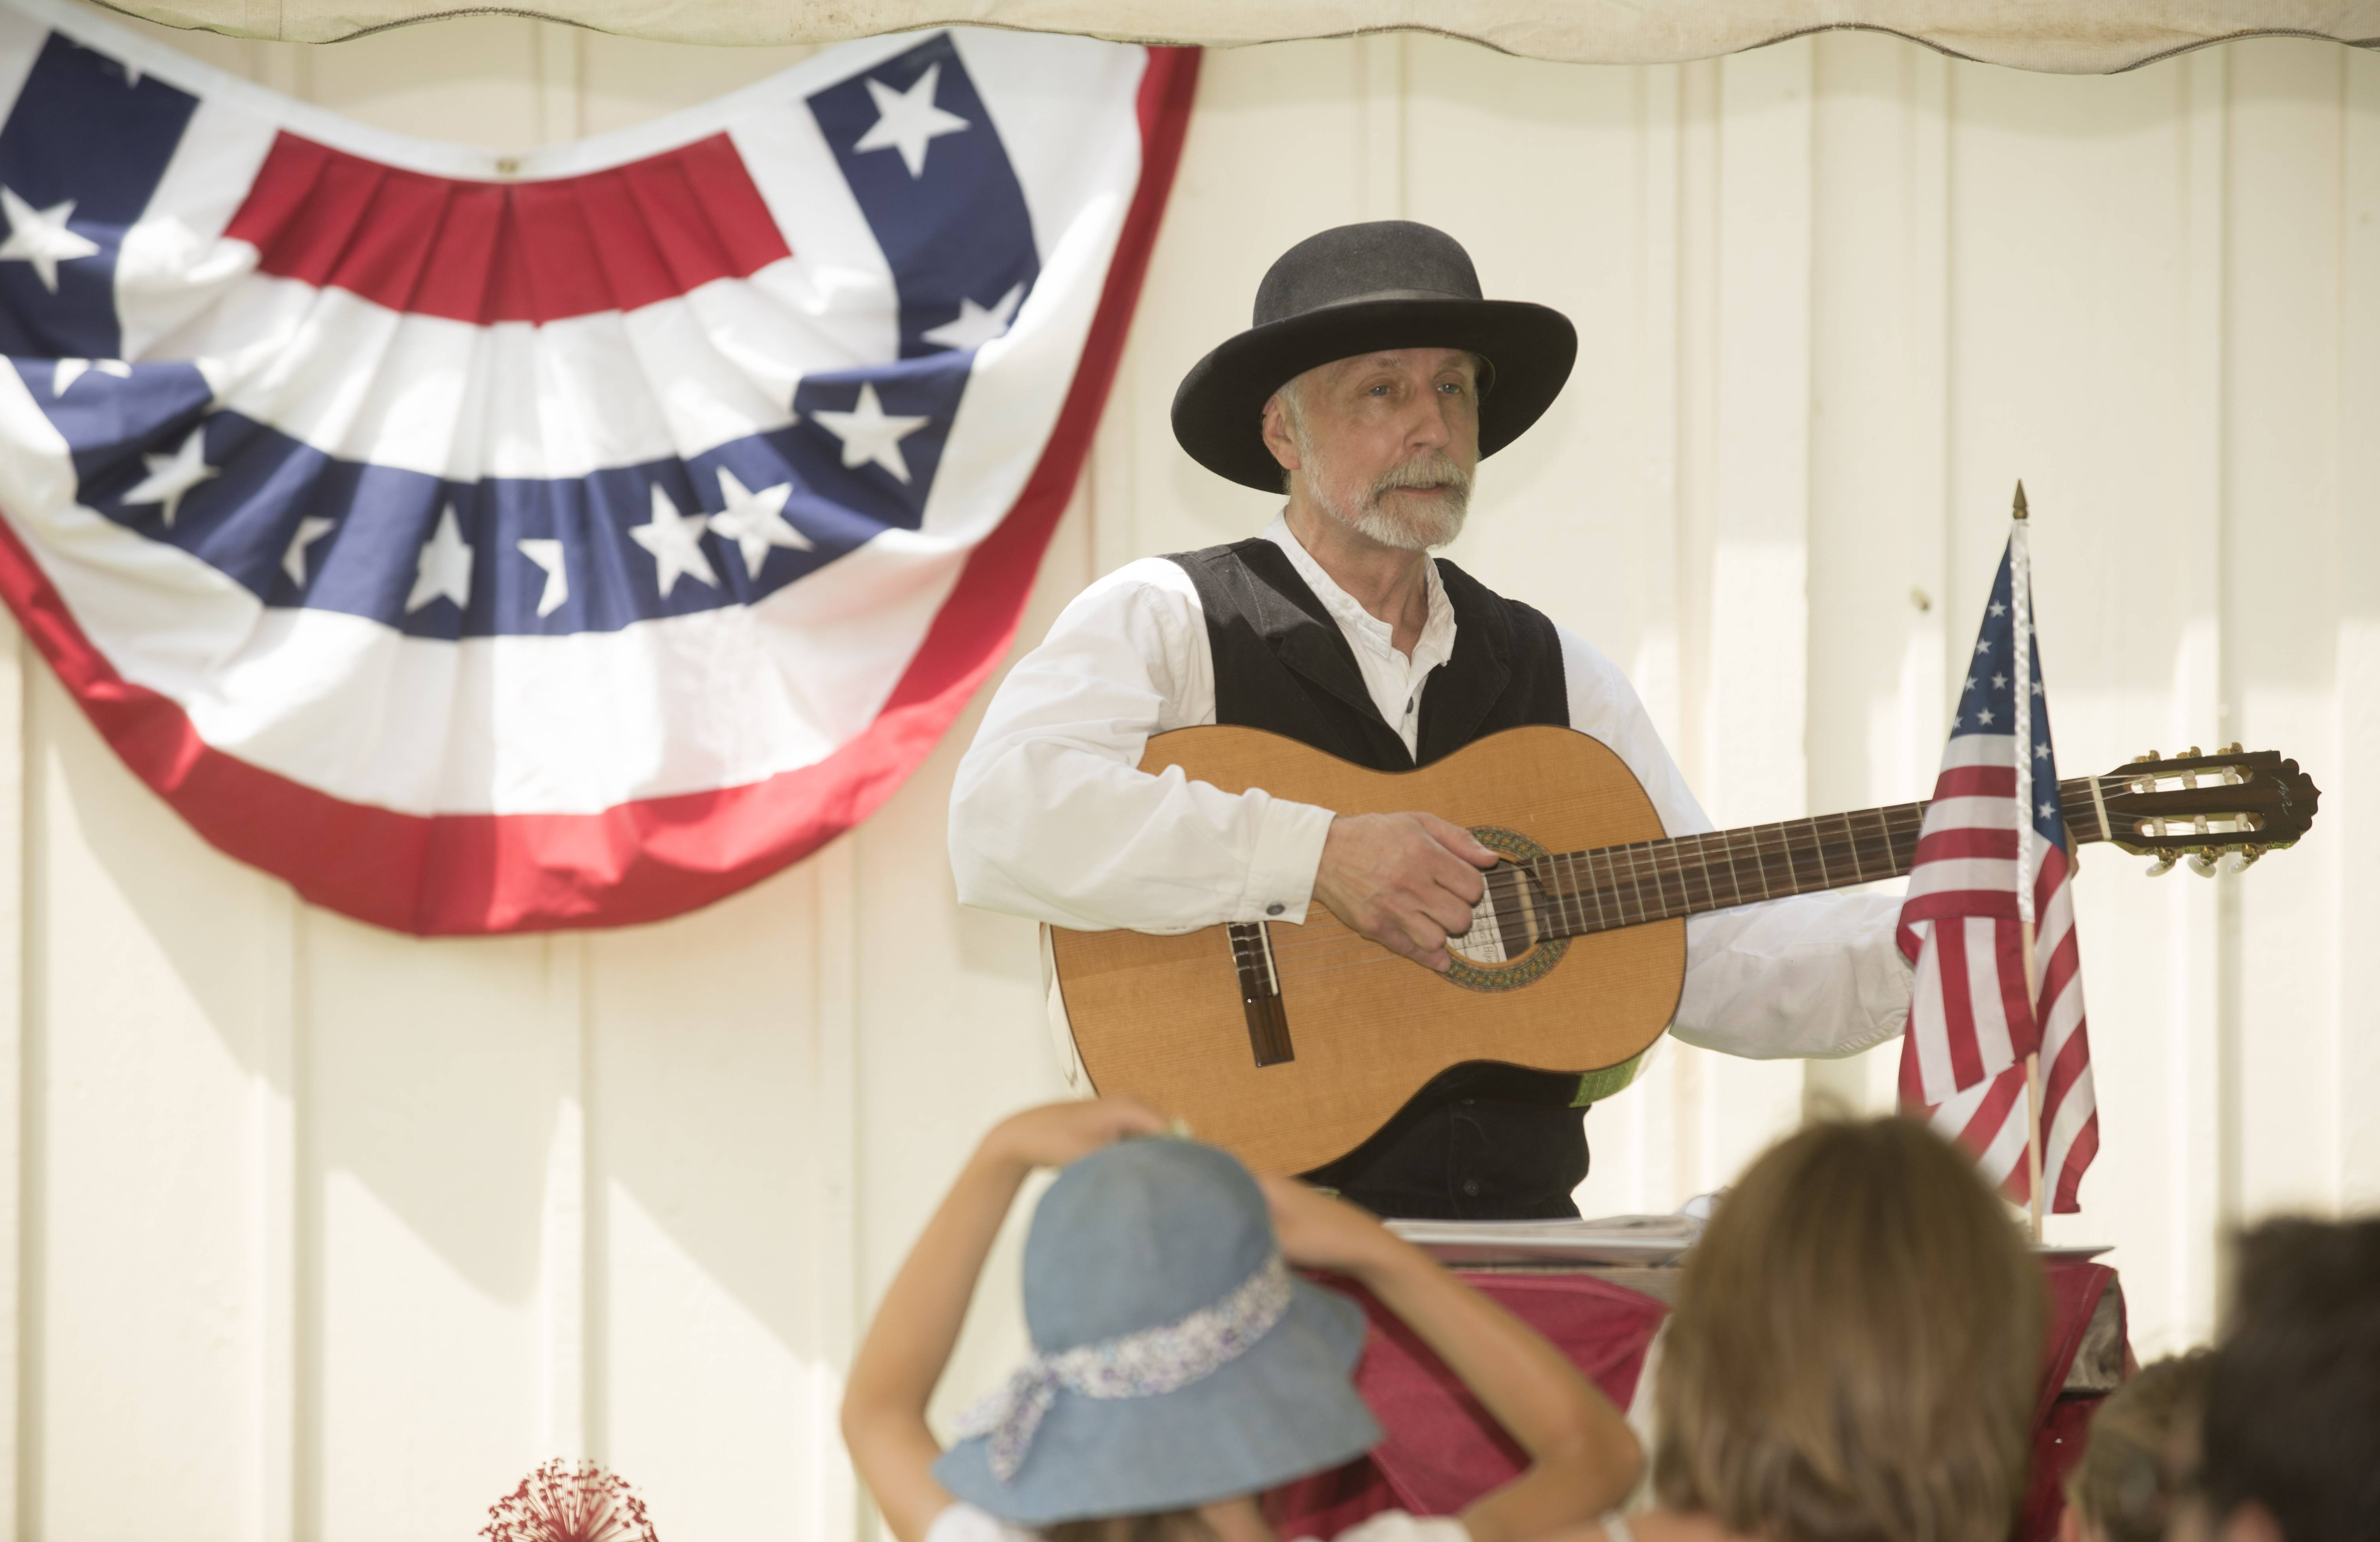 Roger Koteckr sings 1890s patriotic music Sunday during Kline Creek Farm's old-fashioned 4th of July event.